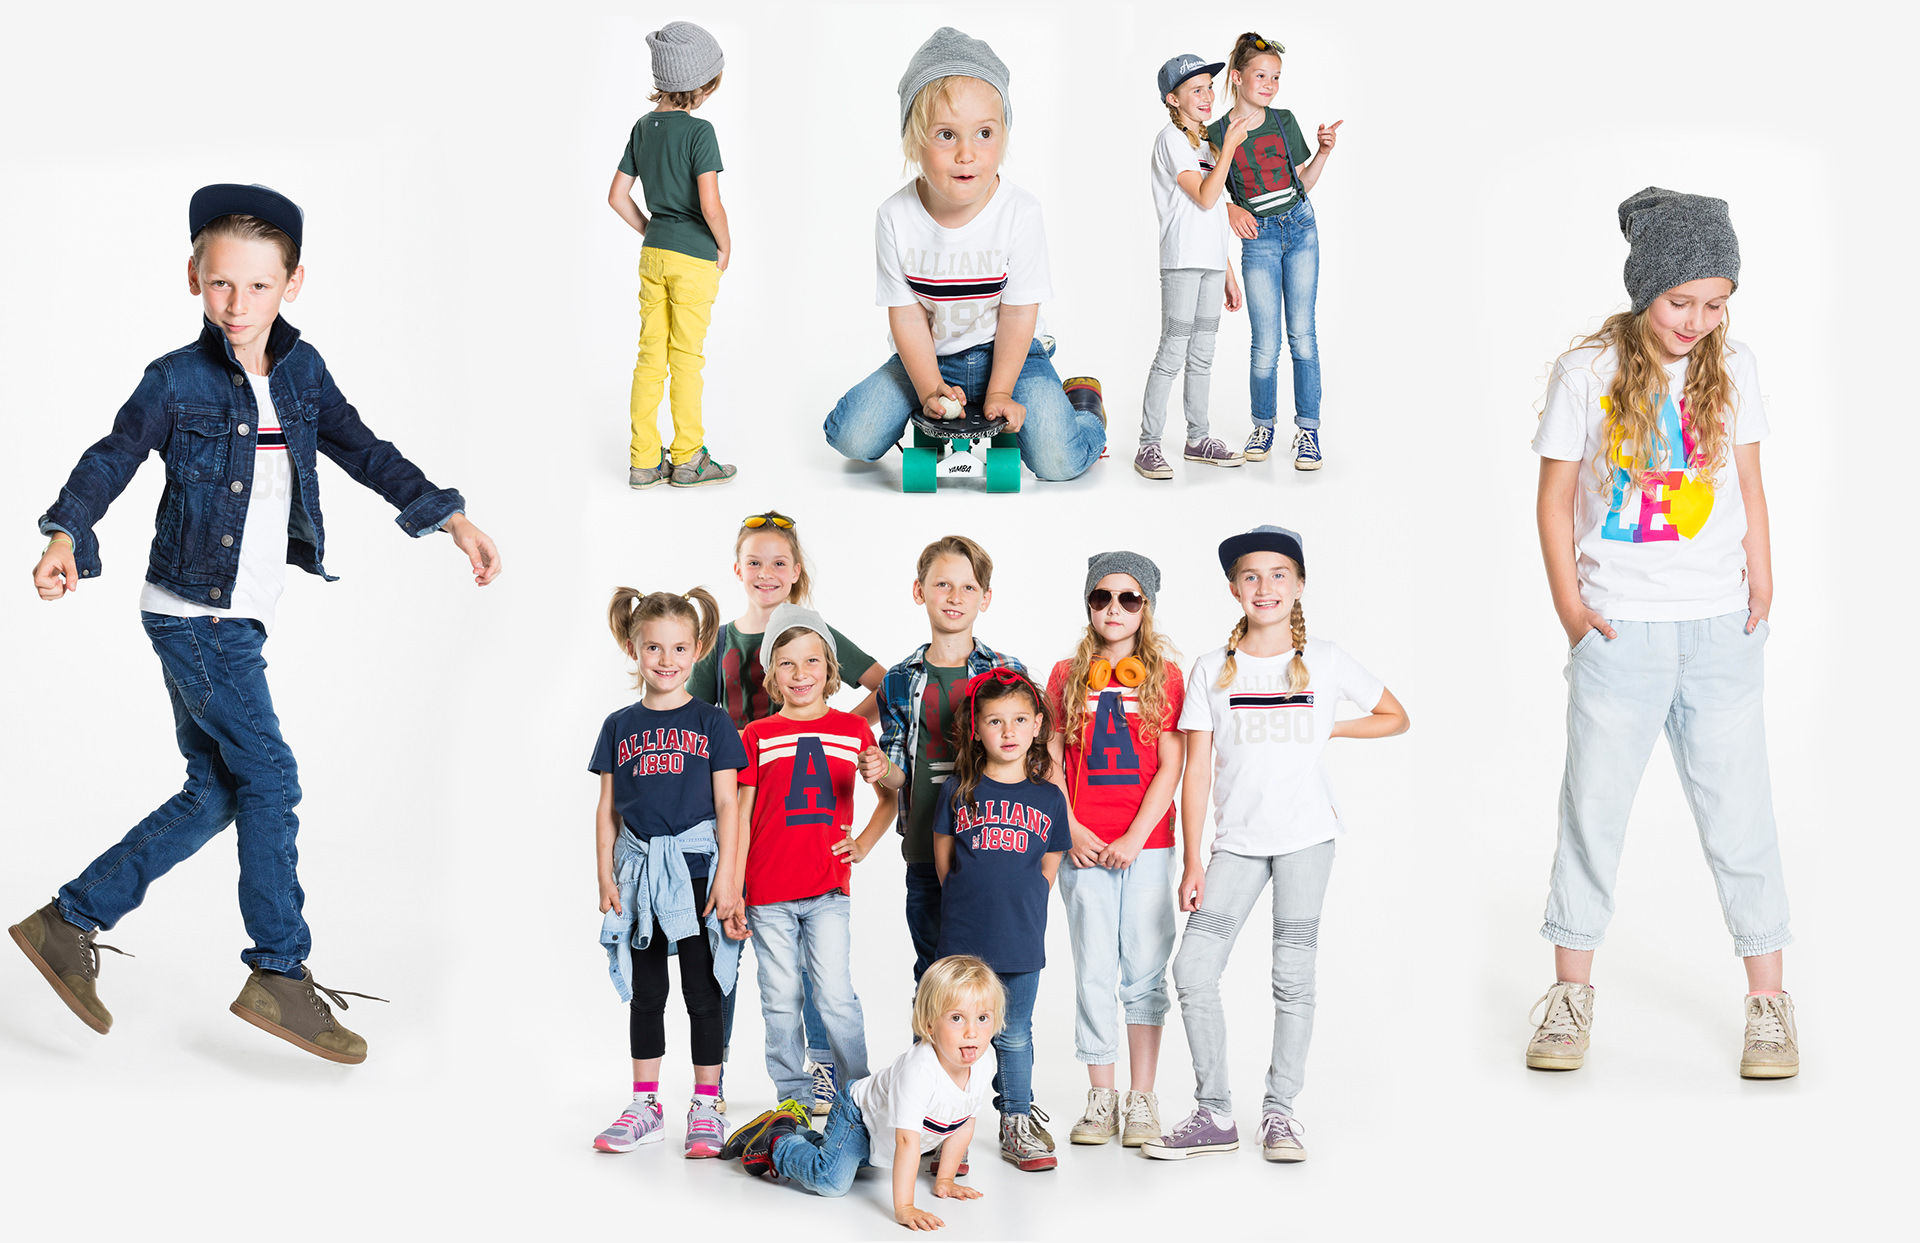 Allianz SE shooting kids products fahion design collection cool LAKE5 Consulting GmbH Hannover Germany